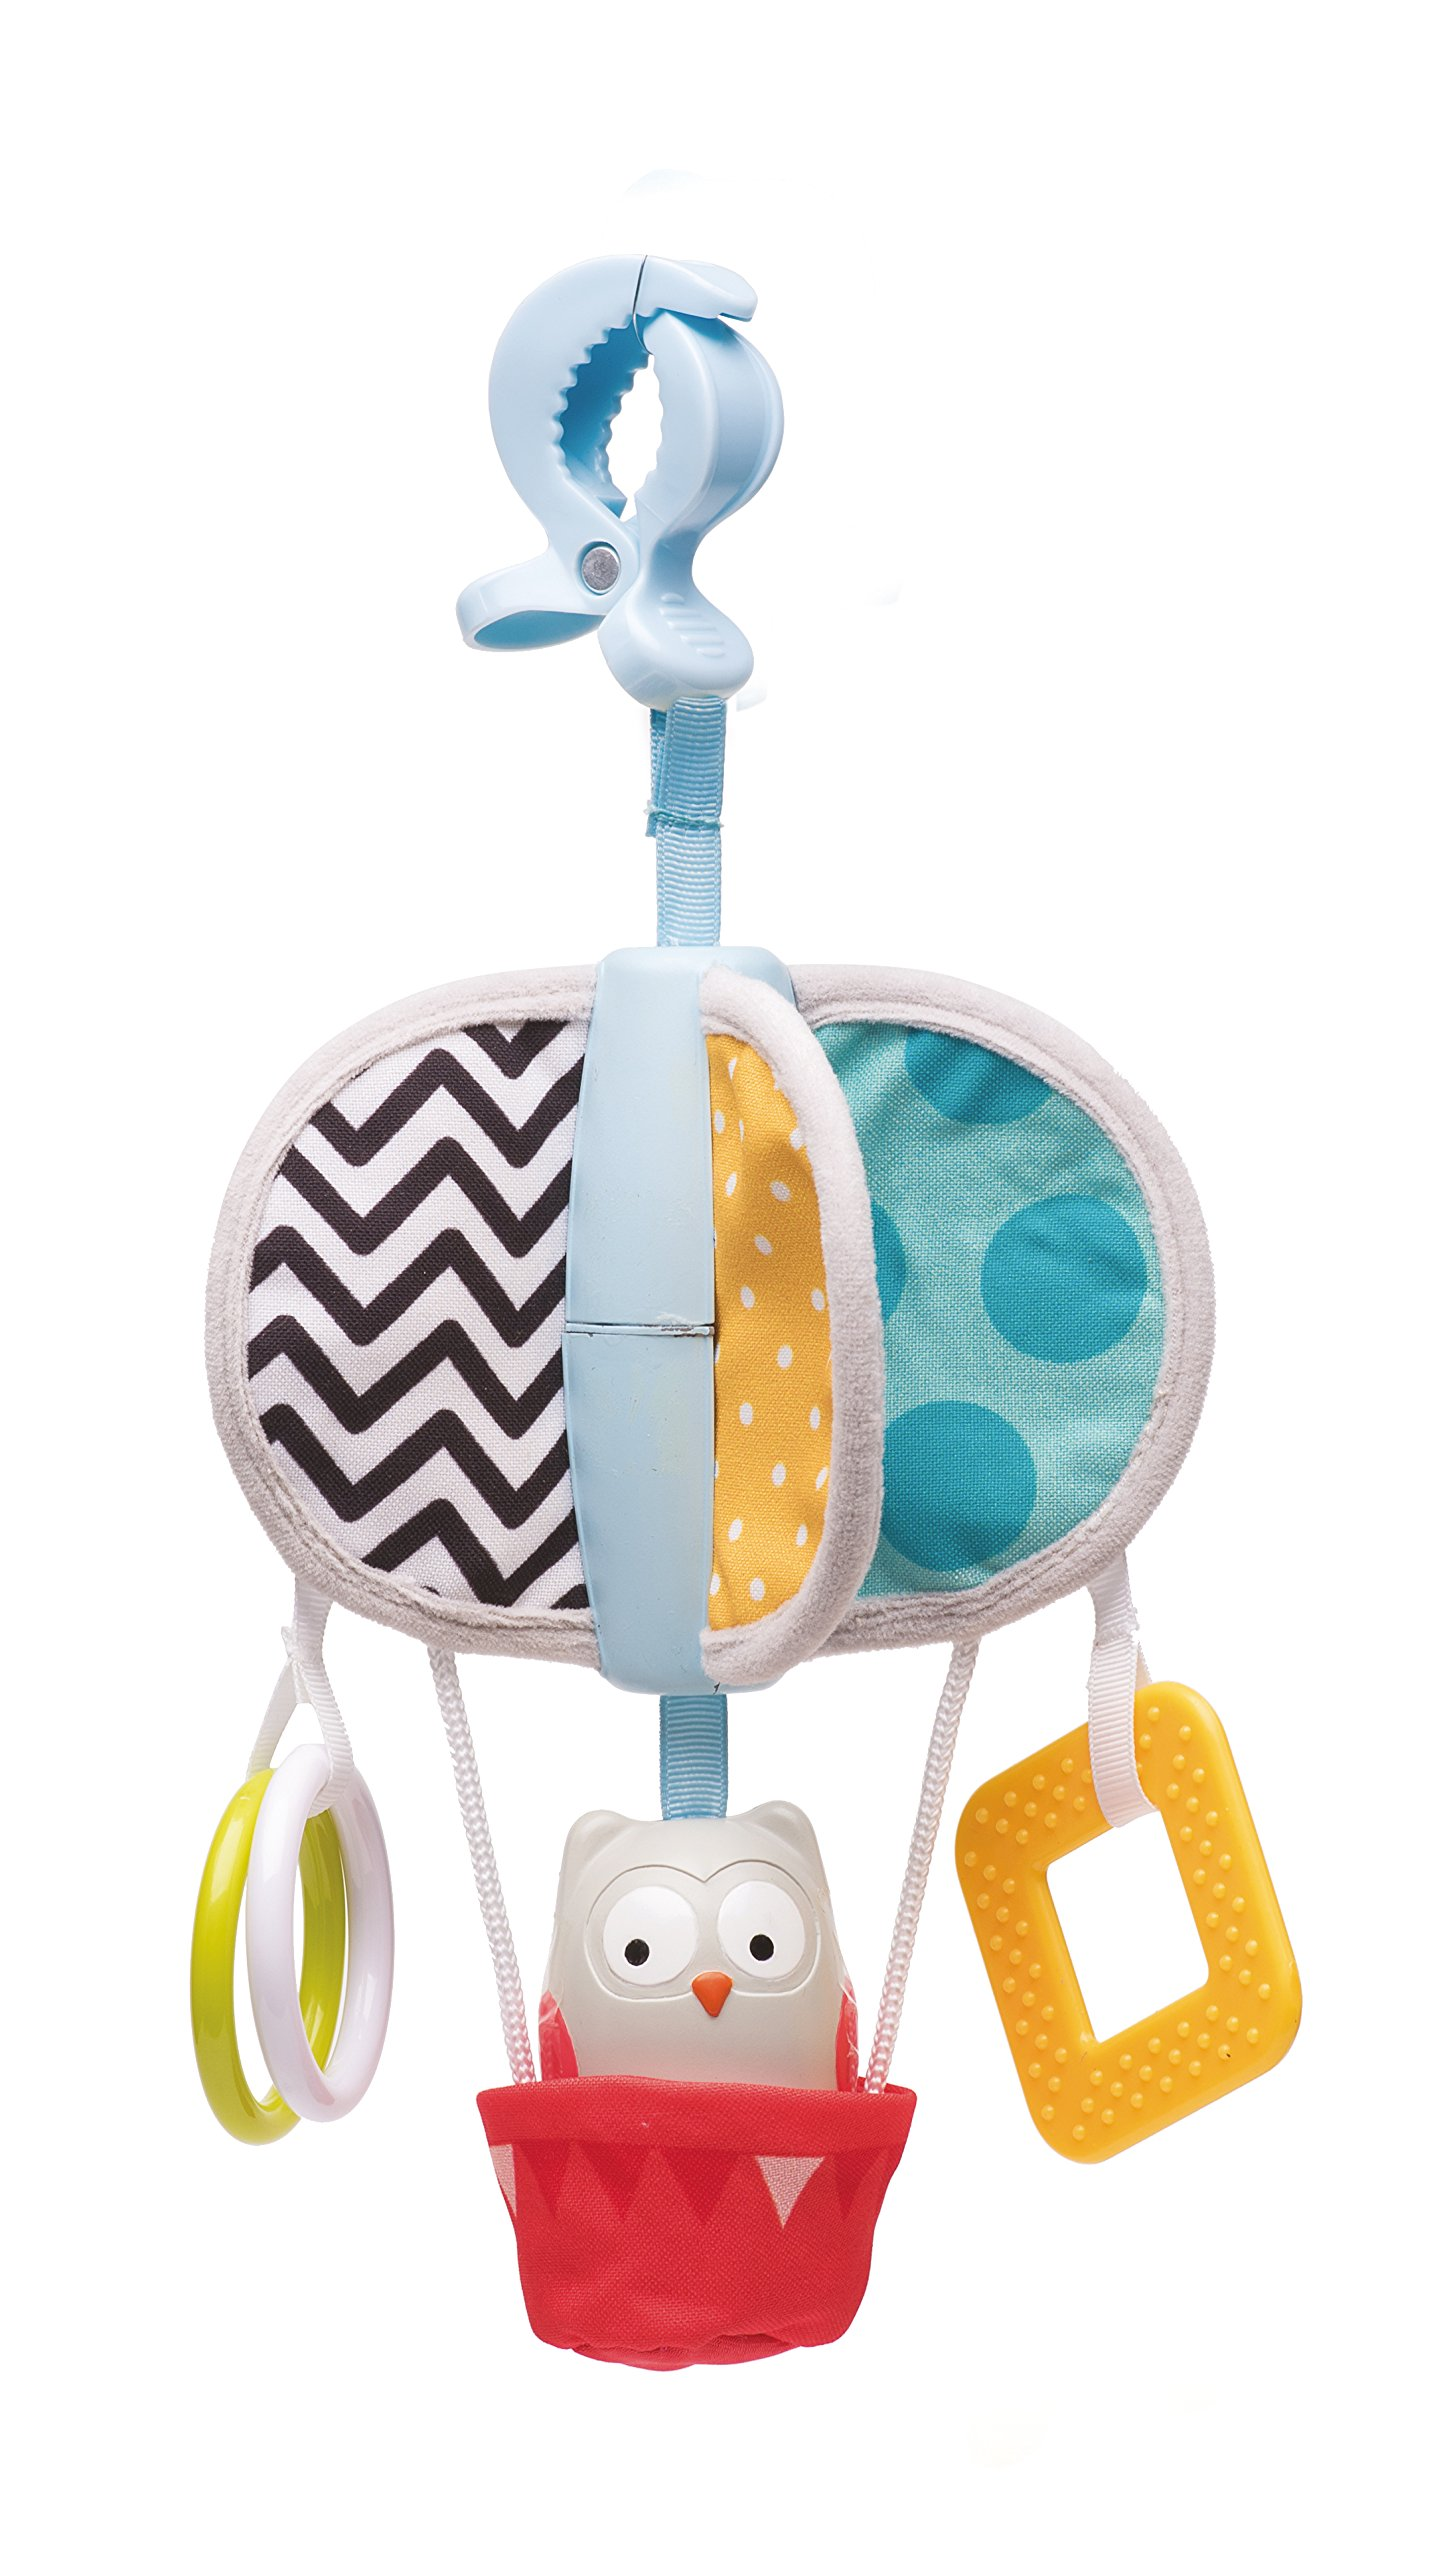 Taf Toys OBI The Owl Take Along Chime Bells Mobile | Early Development Baby Toy | for Baby's Car Seat or Stroller